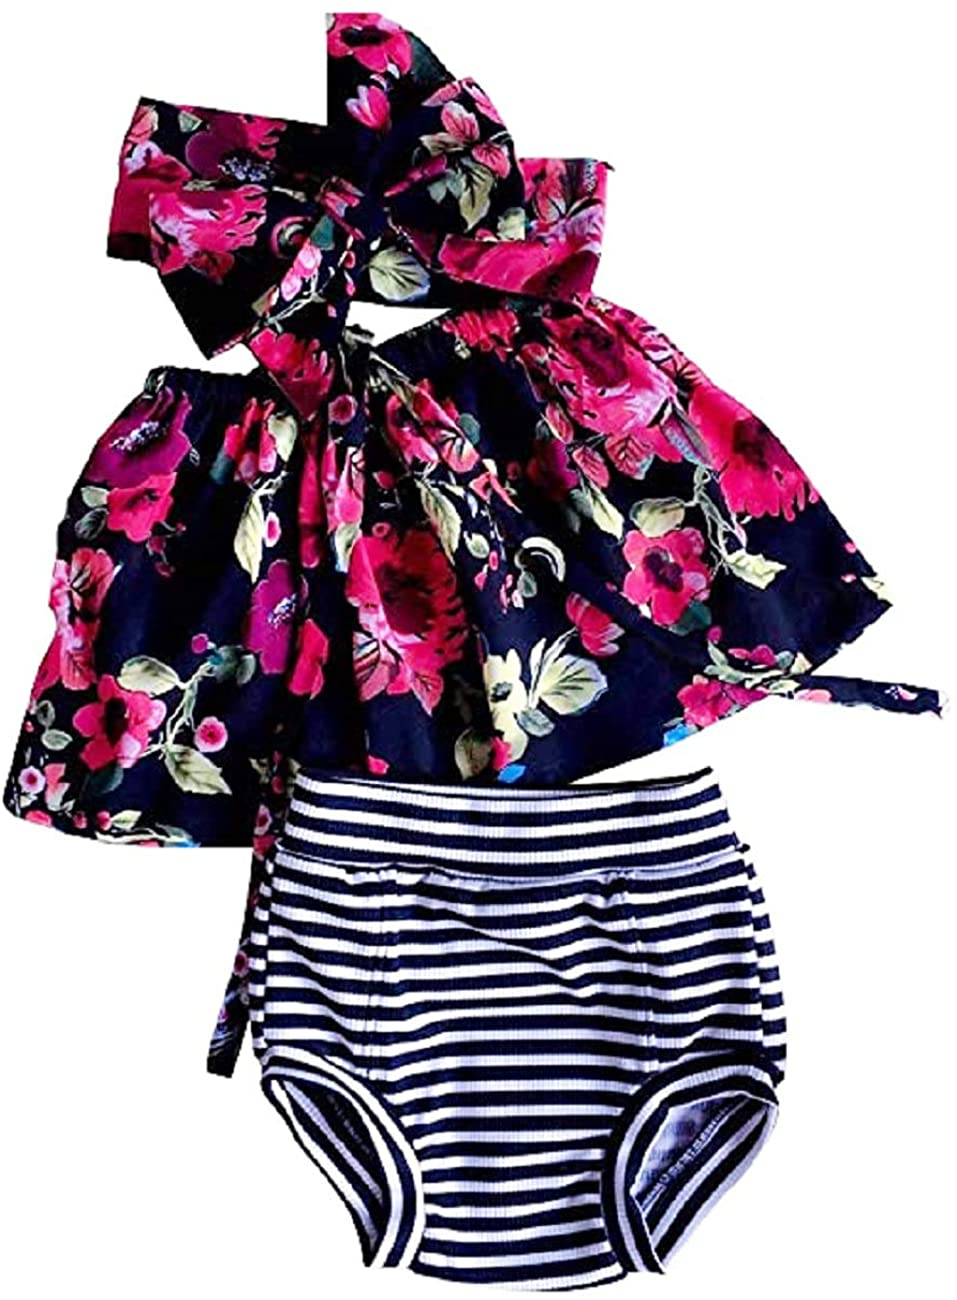 Infant Toddler Baby Girl Clothes Solid Color Ruffle Dress Bloomer Headband Summer Sundress Outfit